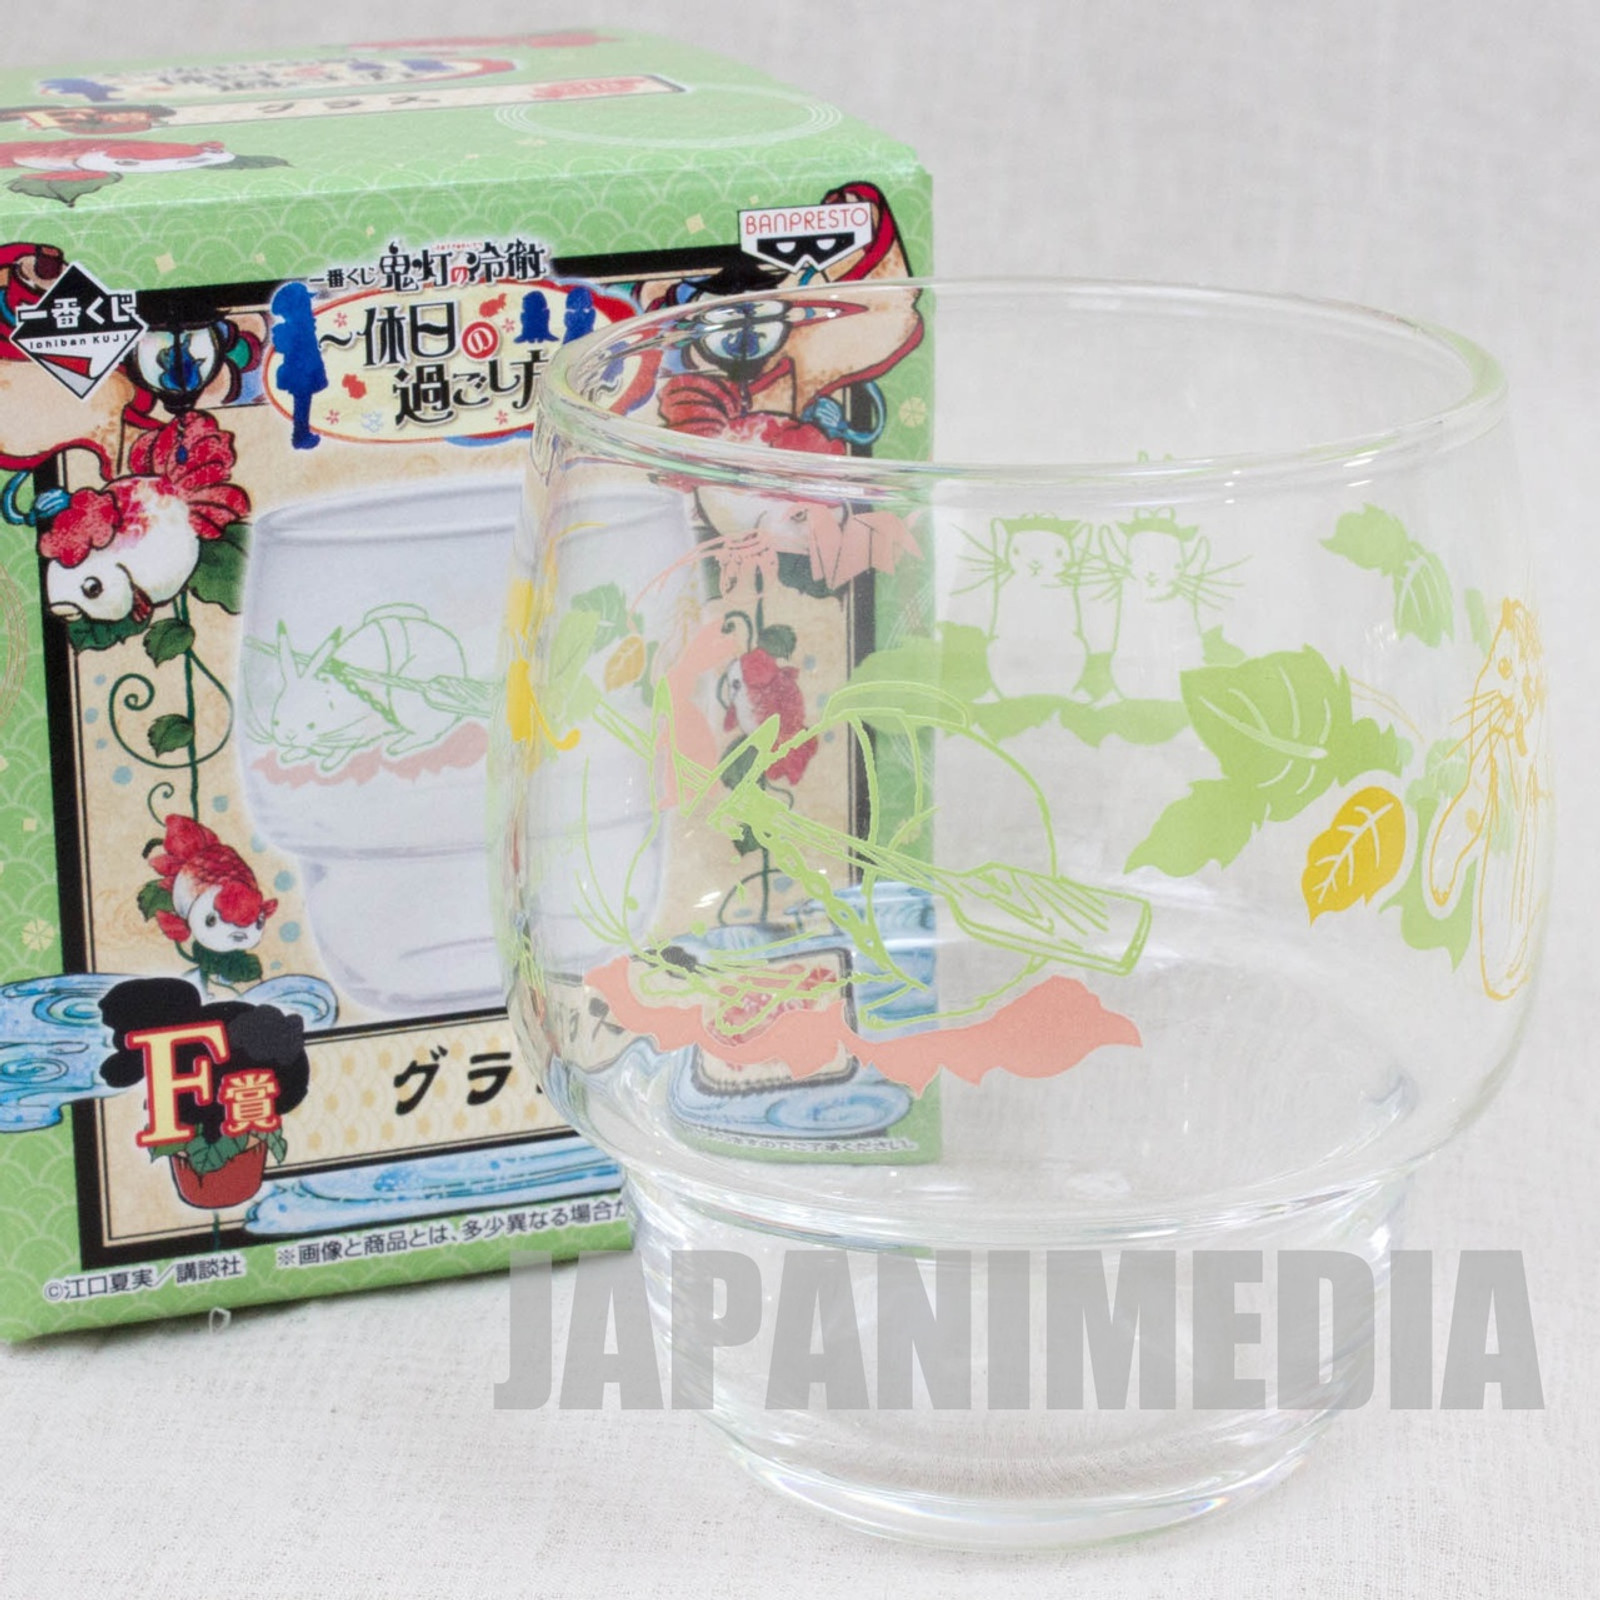 Hozuki no Reitetsu Glass Karashi Rabbit Ver. Banpresto JAPAN ANIME MANGA